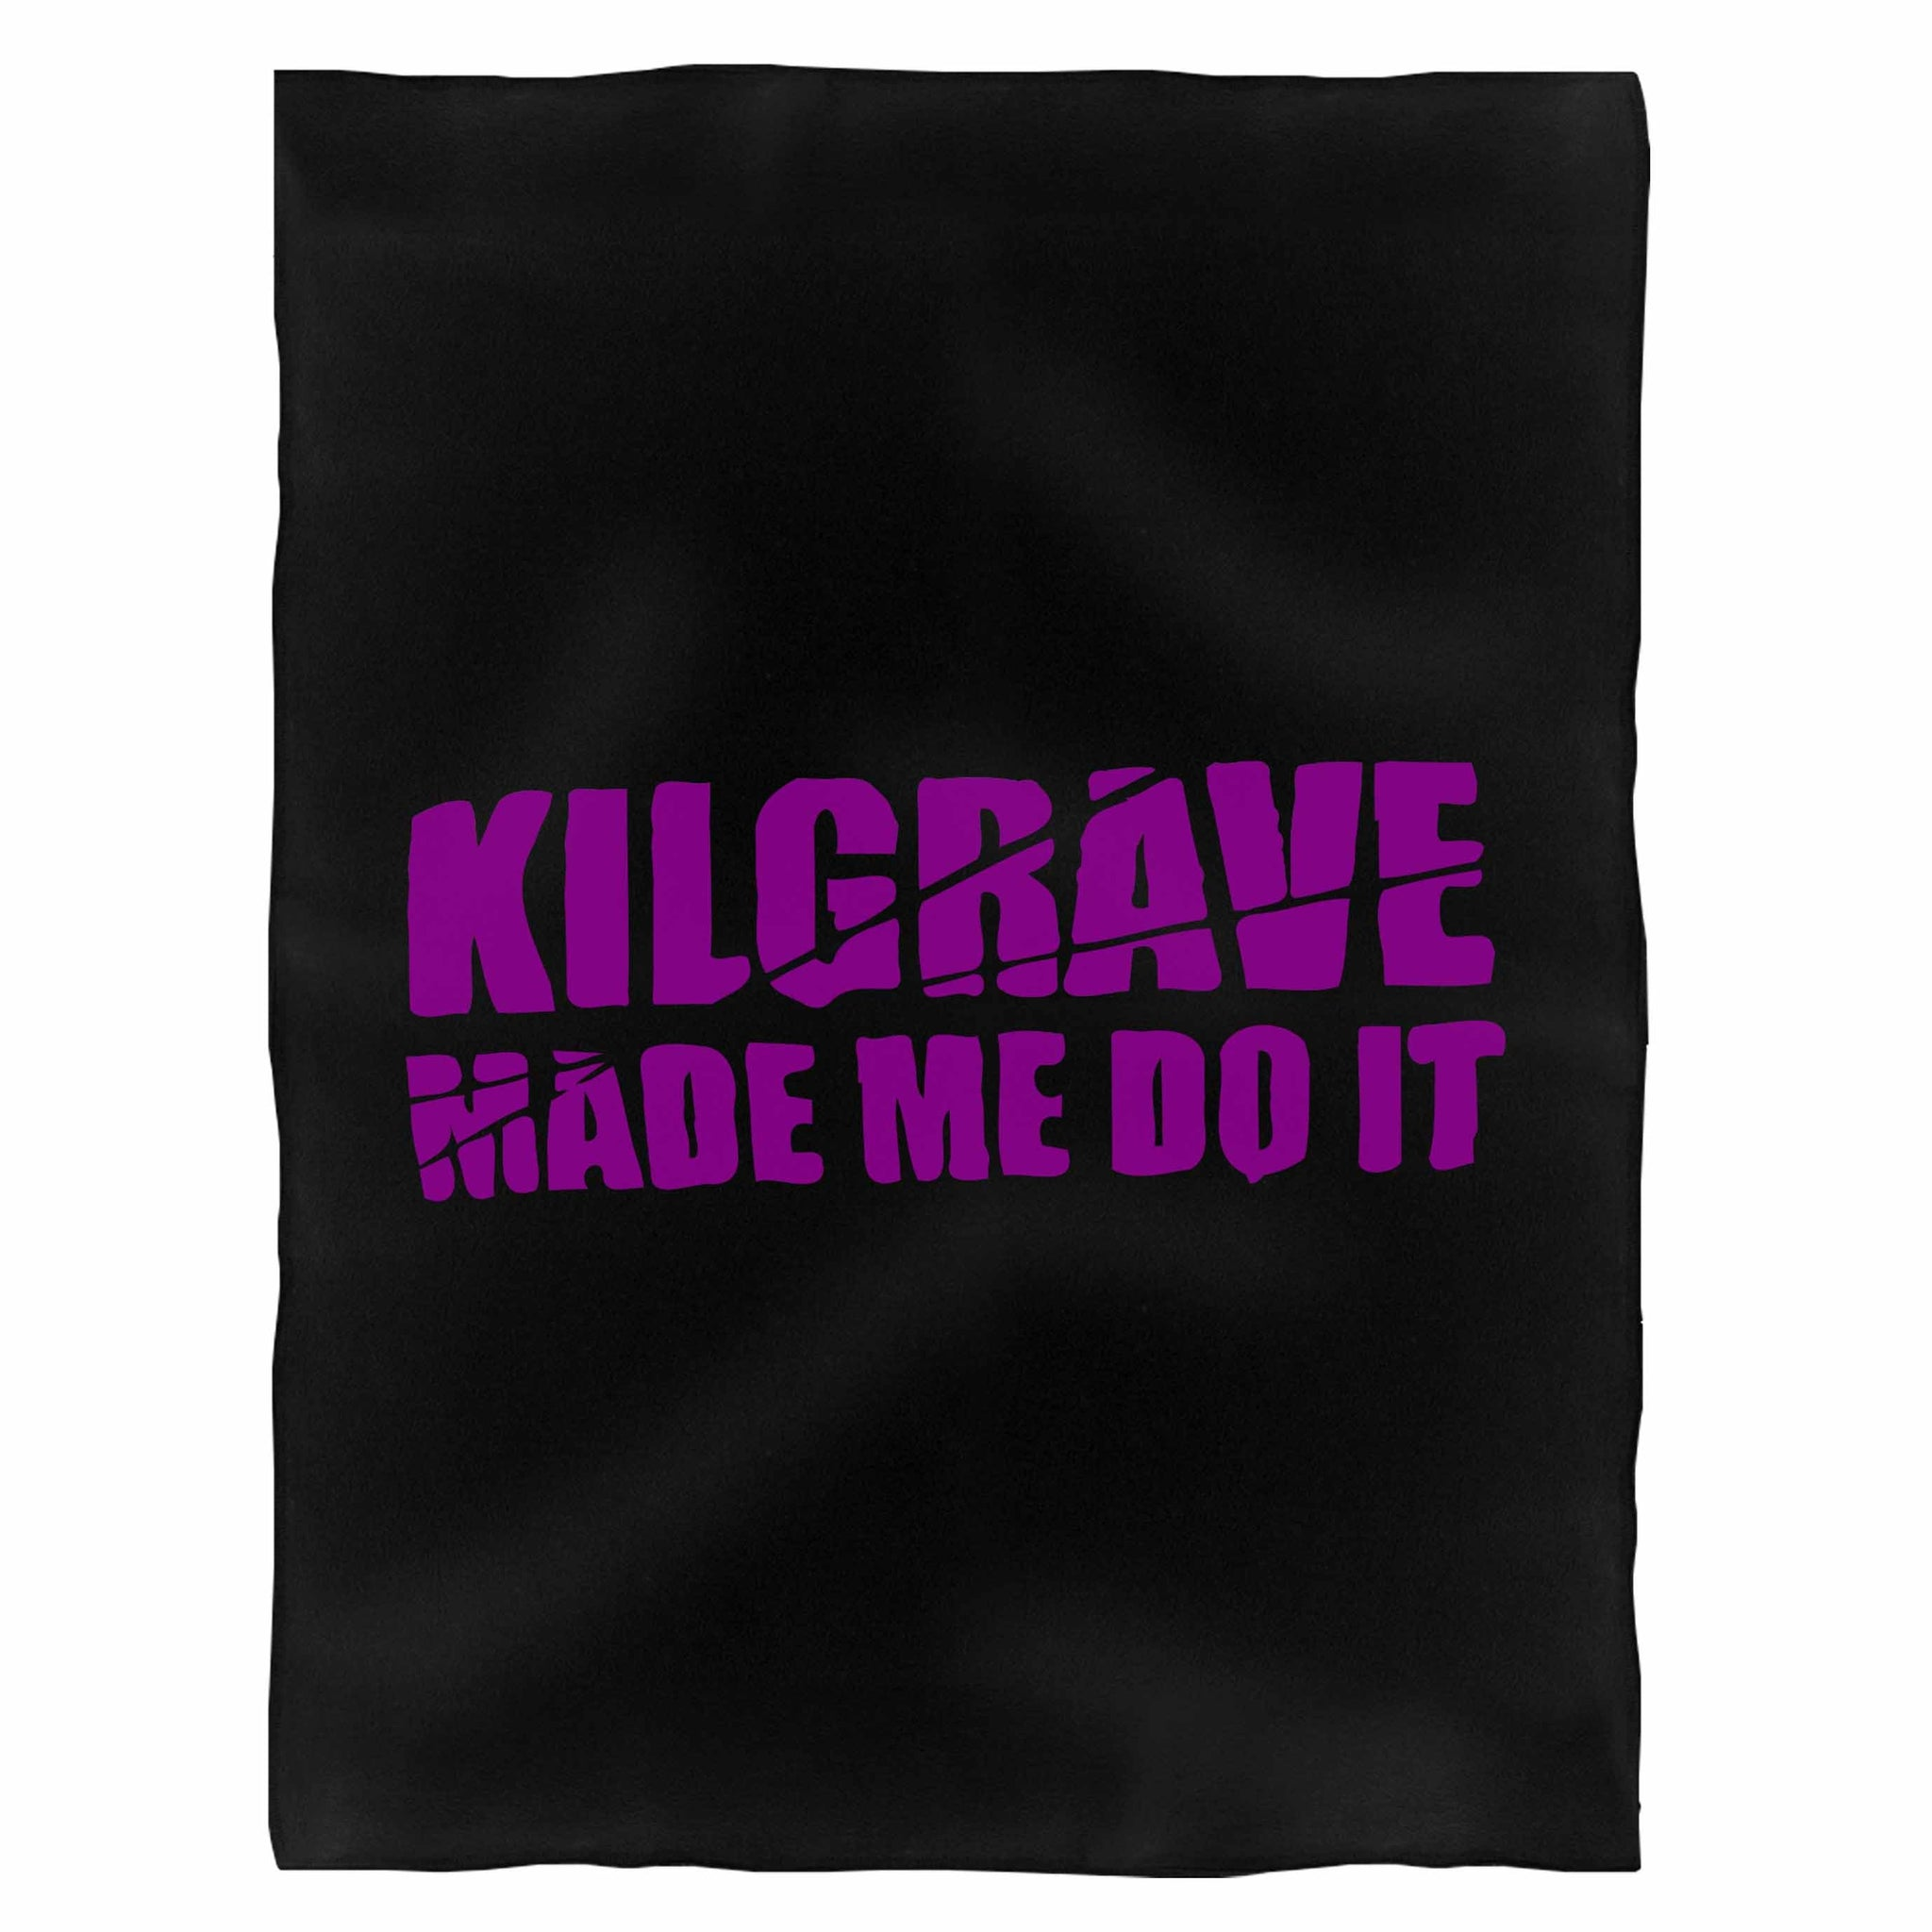 Kilgrave Made Me Do It Jessica Jones Inspired Fleece Blanket